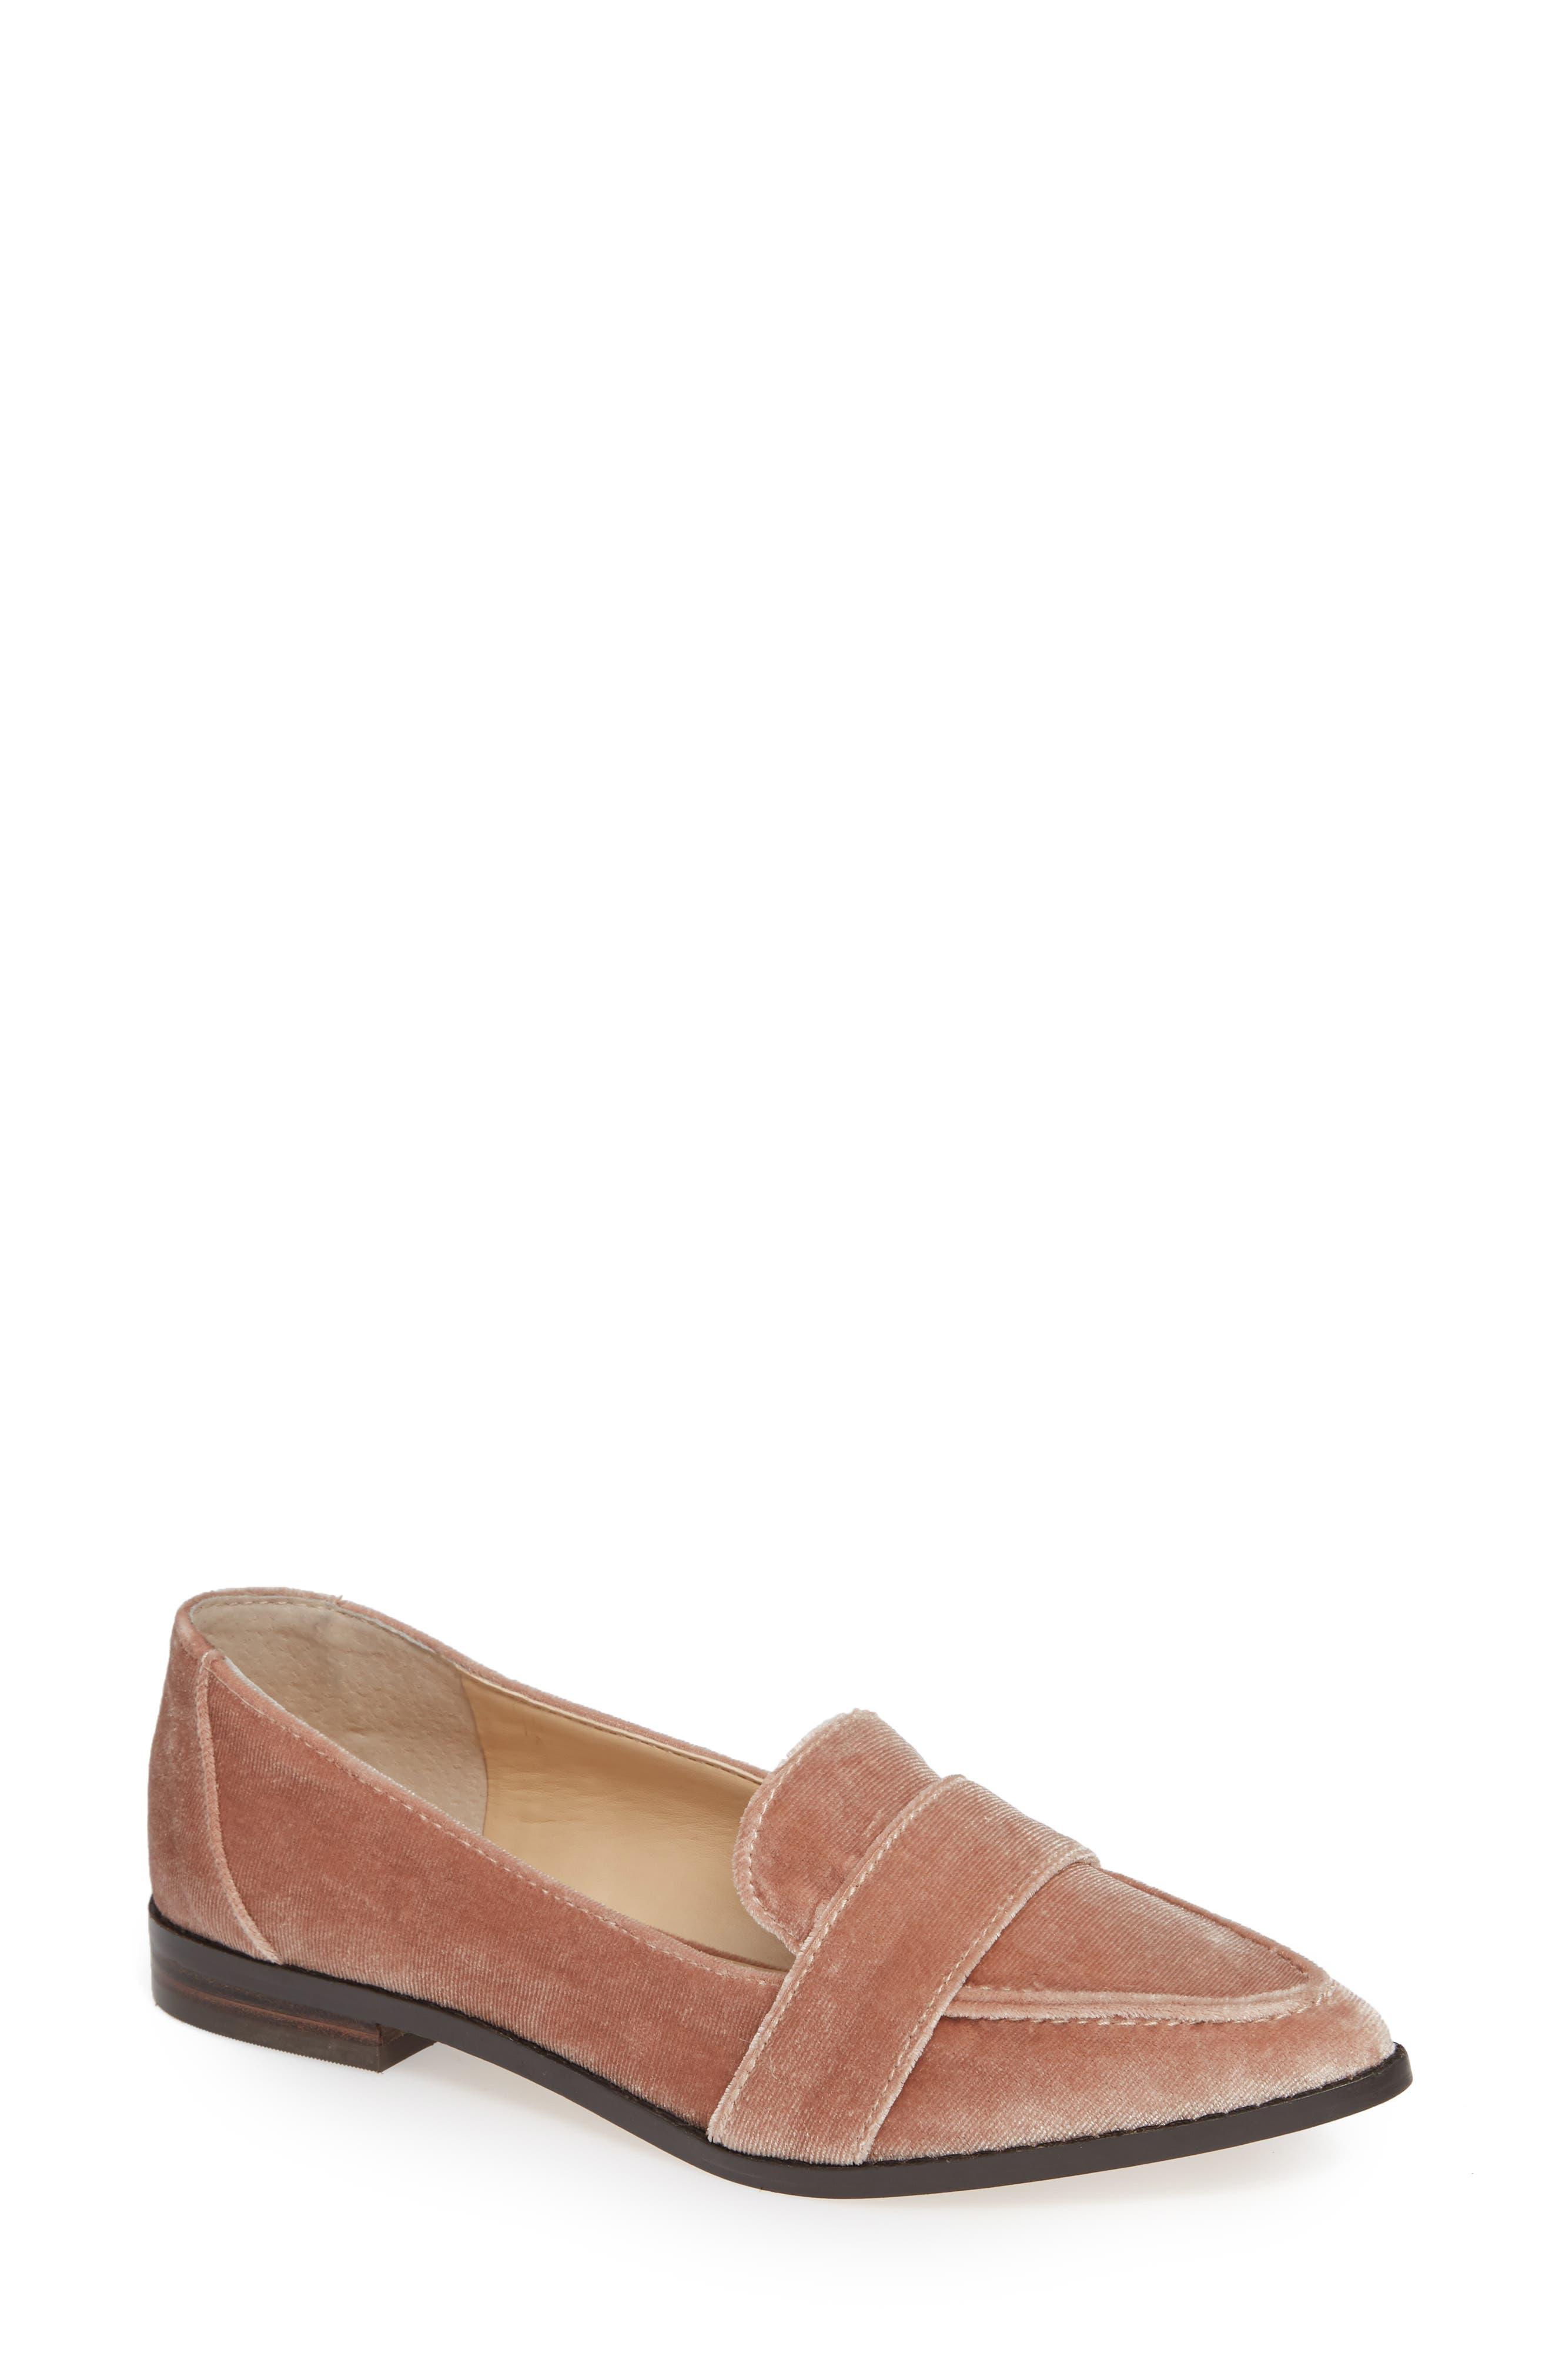 SOLE SOCIETY, Edie Pointy Toe Loafer, Main thumbnail 1, color, 682